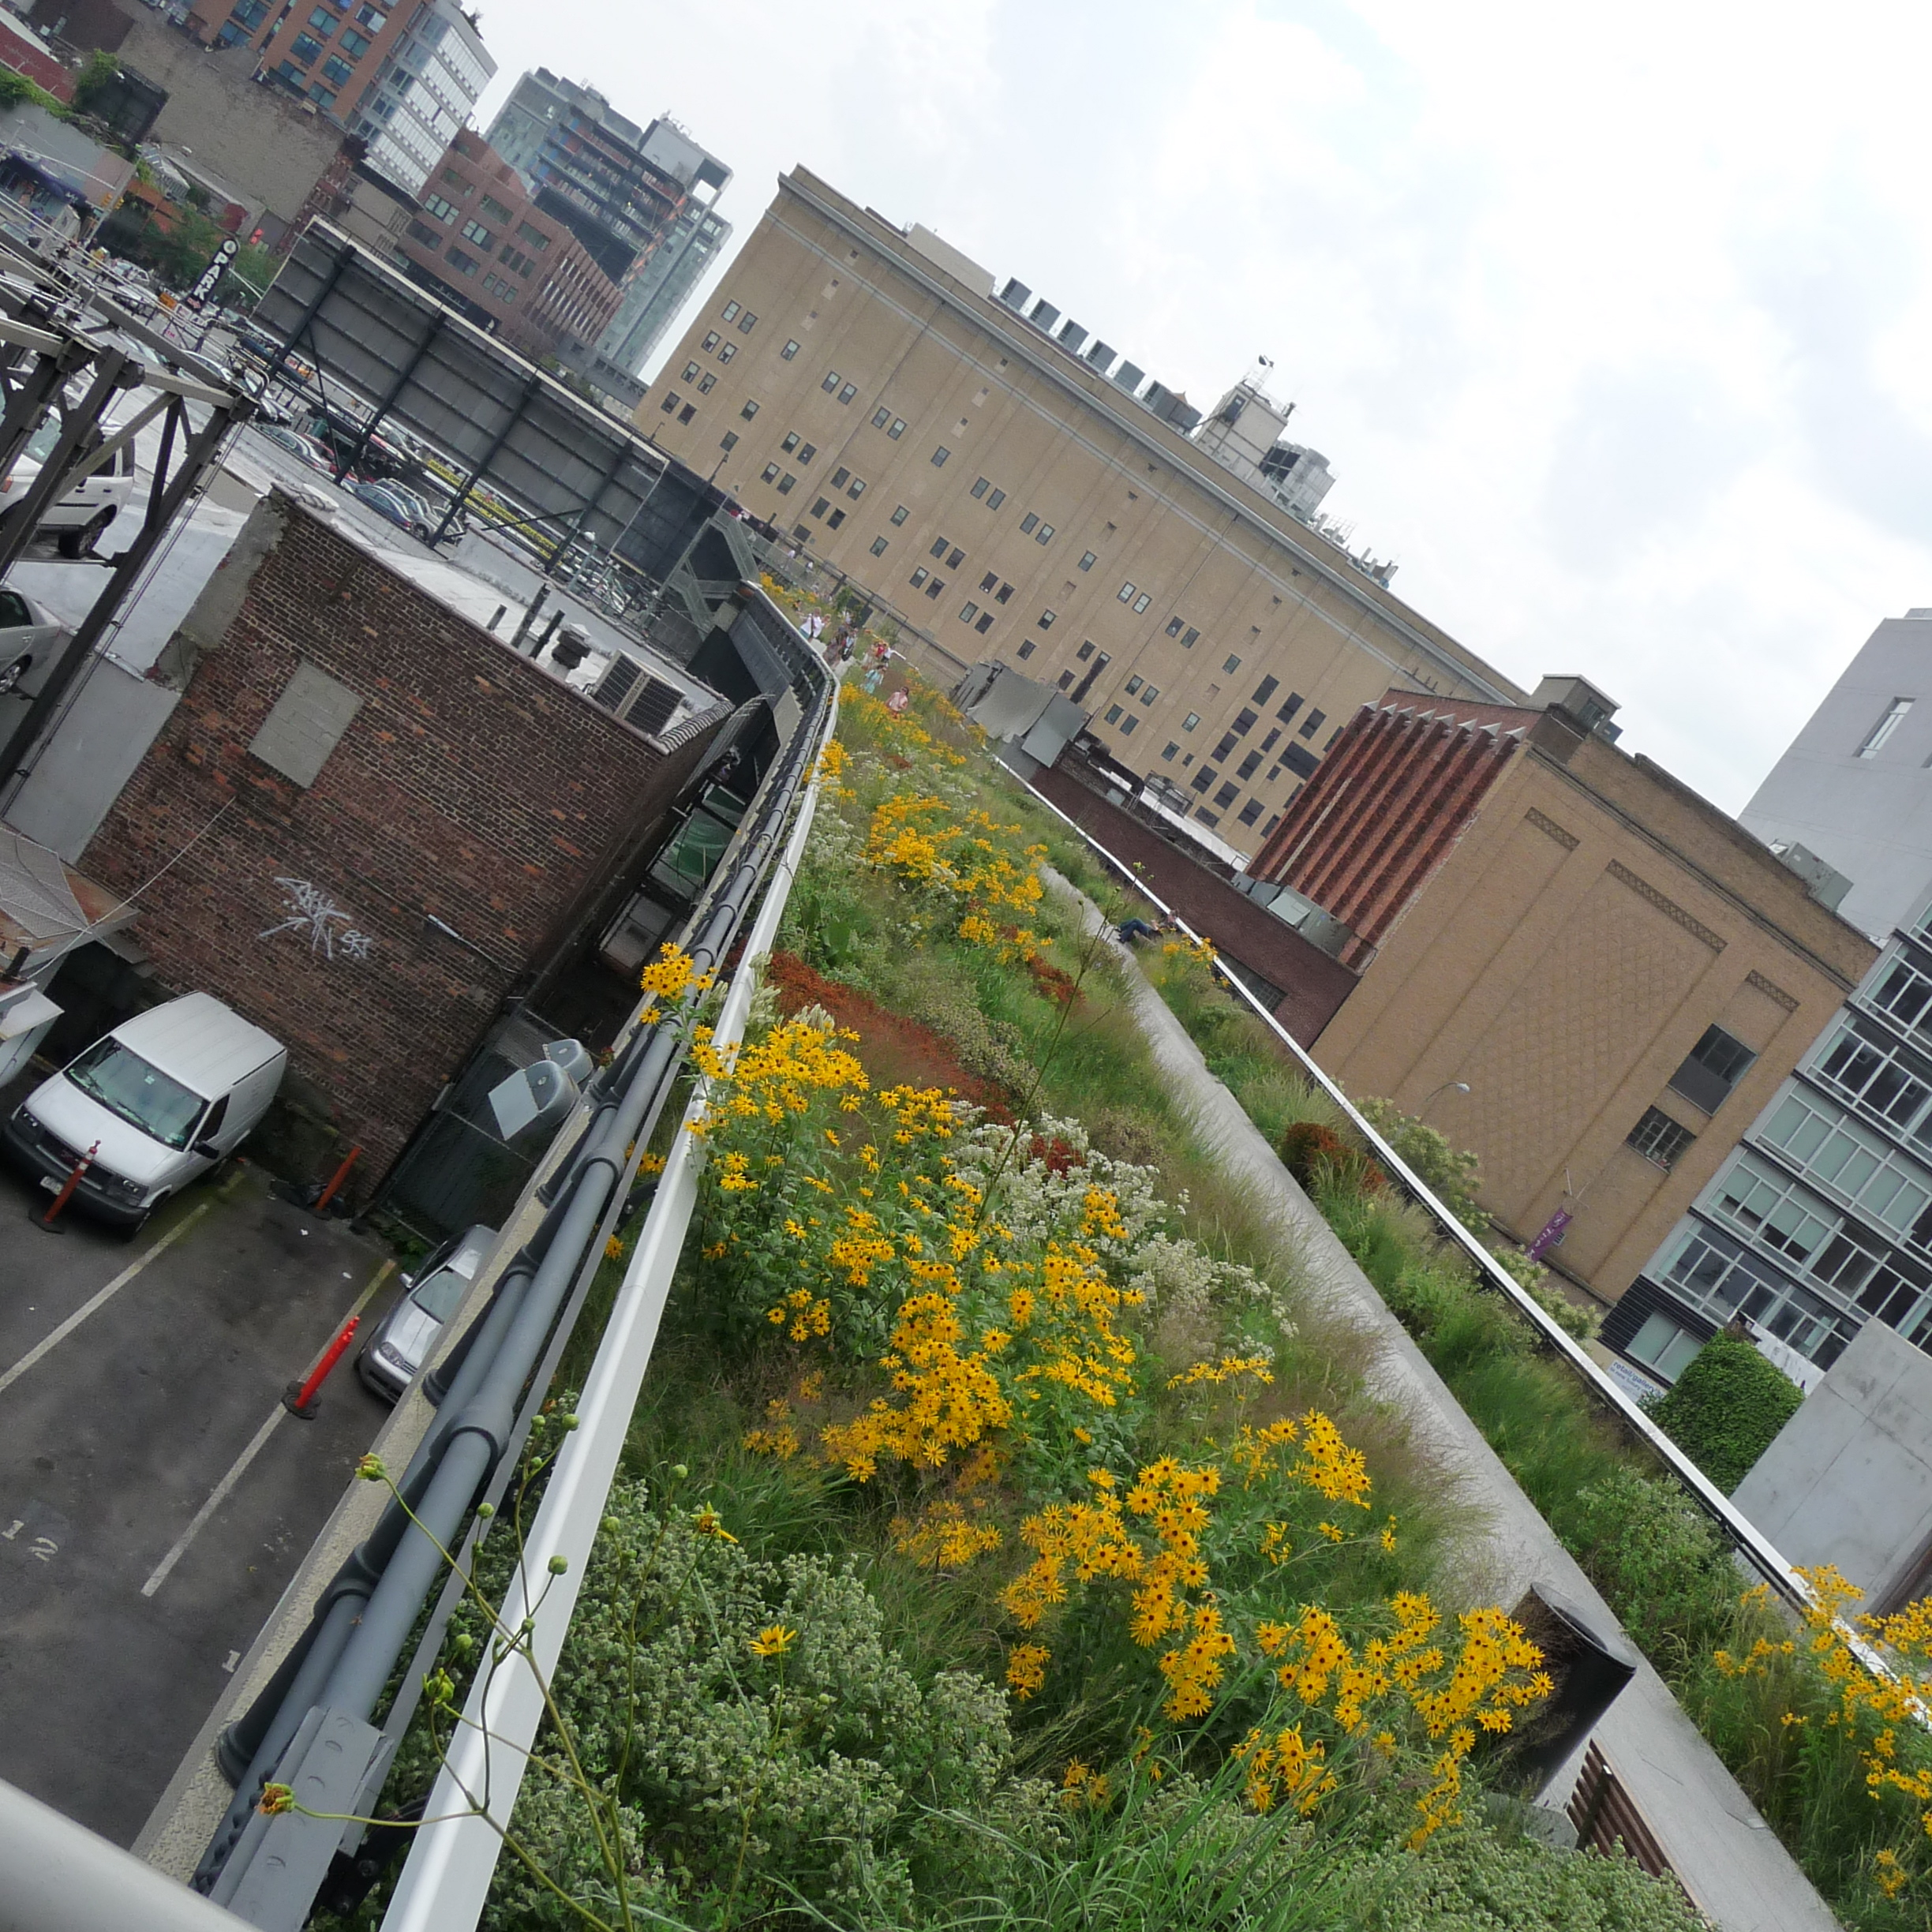 The High Line in New York City brings much-needed green space to the city's west side